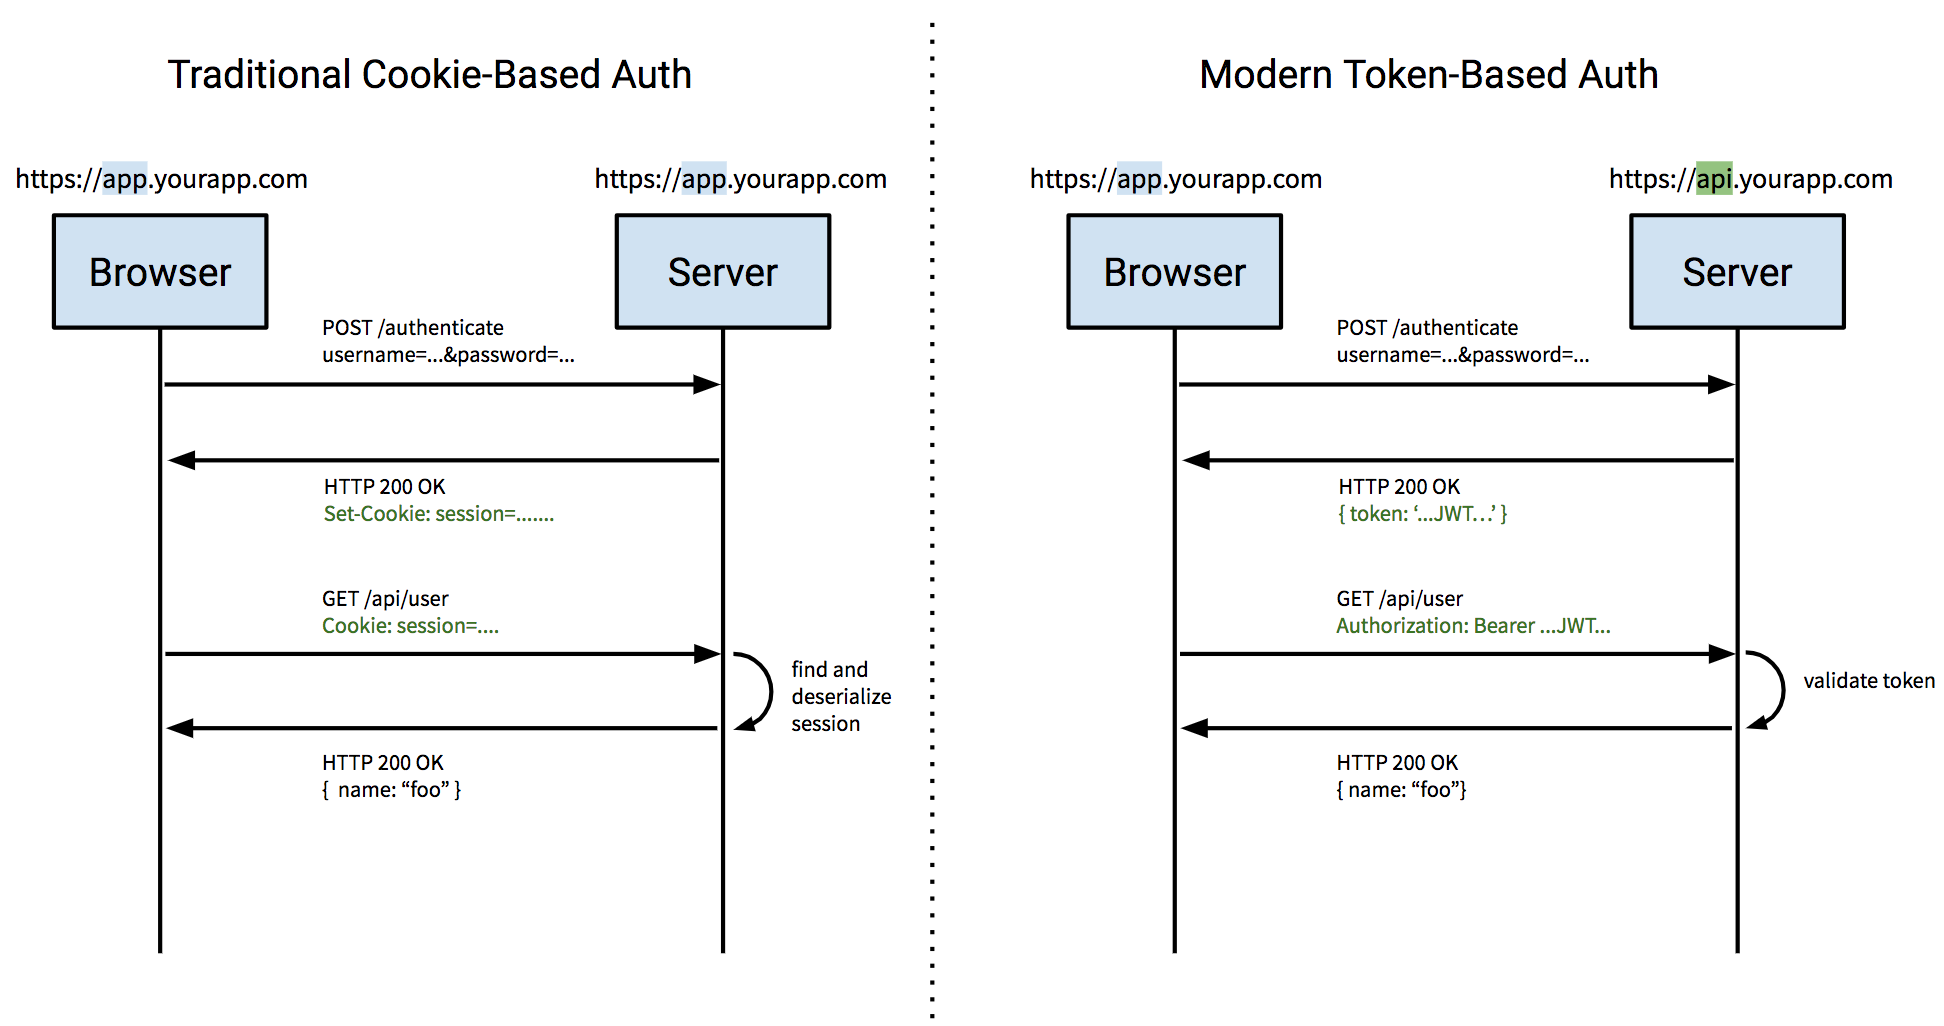 Traditional cookied-based authentication vs modern token-based authentication.